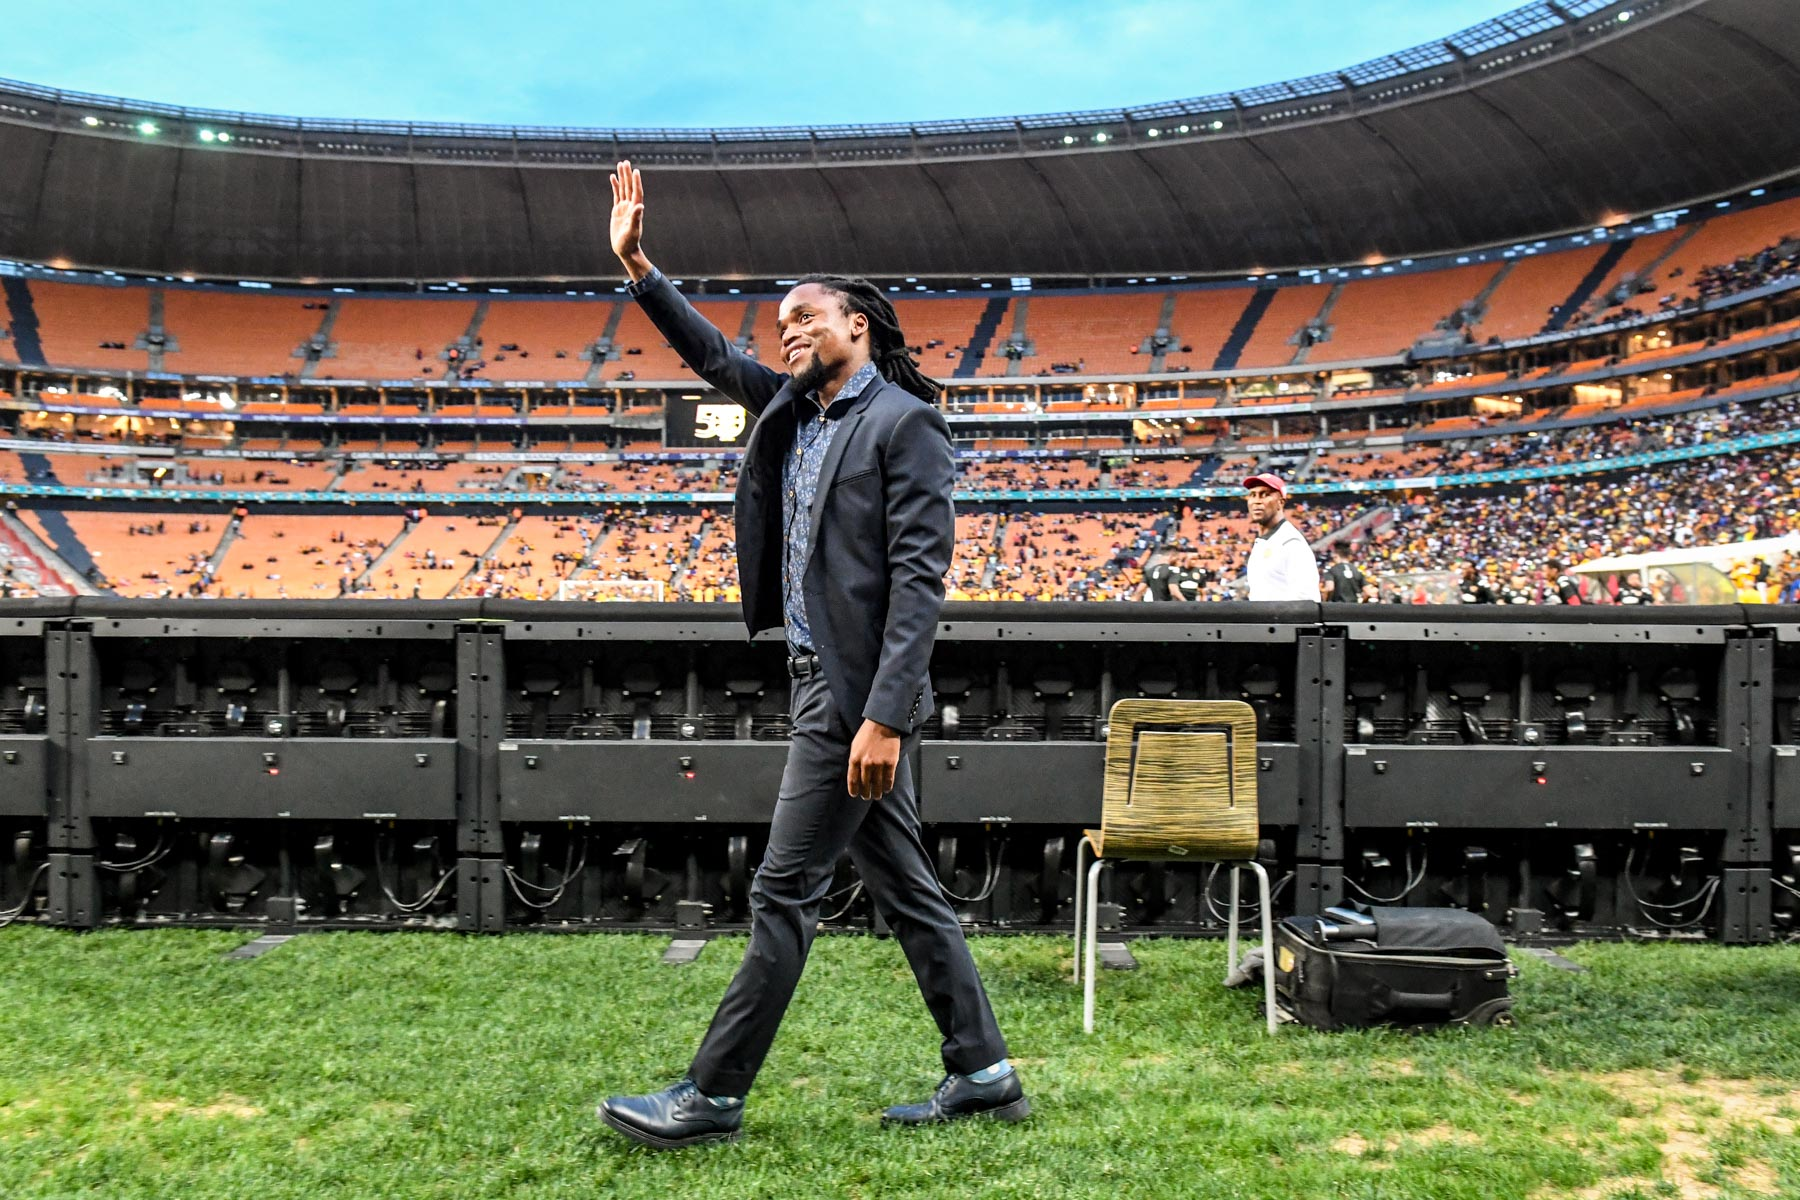 8 January 2020: Former Kaizer Chiefs player Siphiwe Tshabalala at the club's Absa Premiership match against Highlands Park at the FNB Stadium in Johannesburg. (Photograph by Sydney Seshibedi/ Gallo Images)